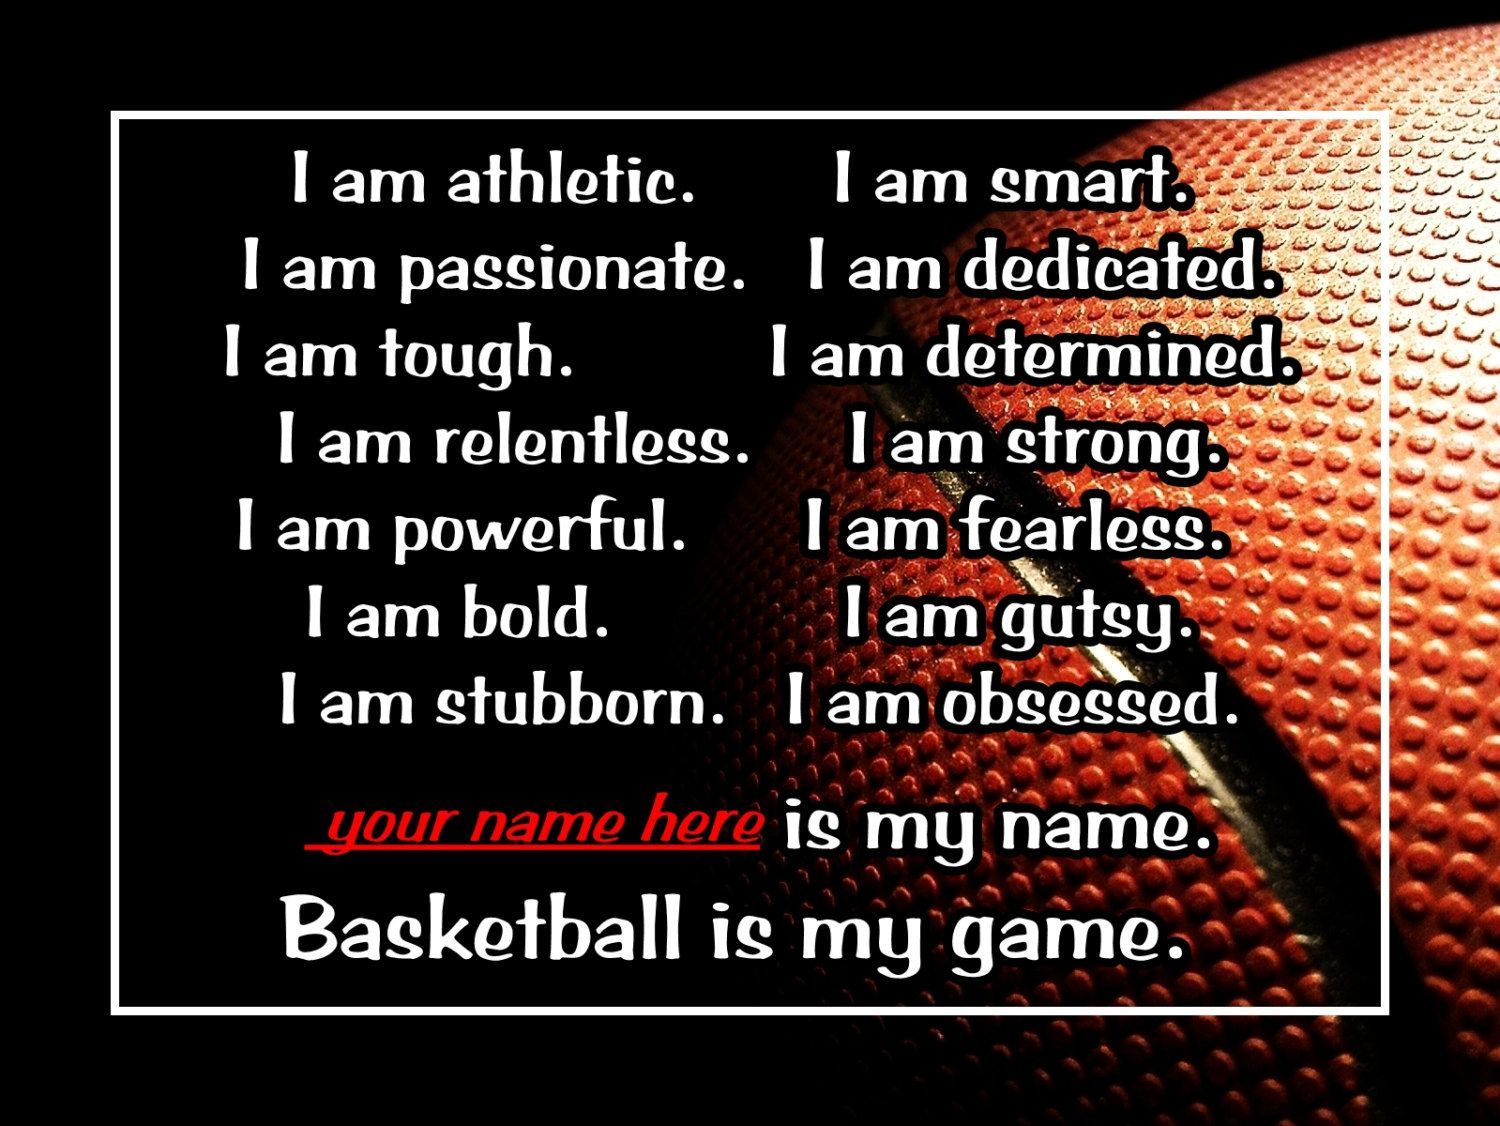 Basketball is my game quote personalized poster wall art